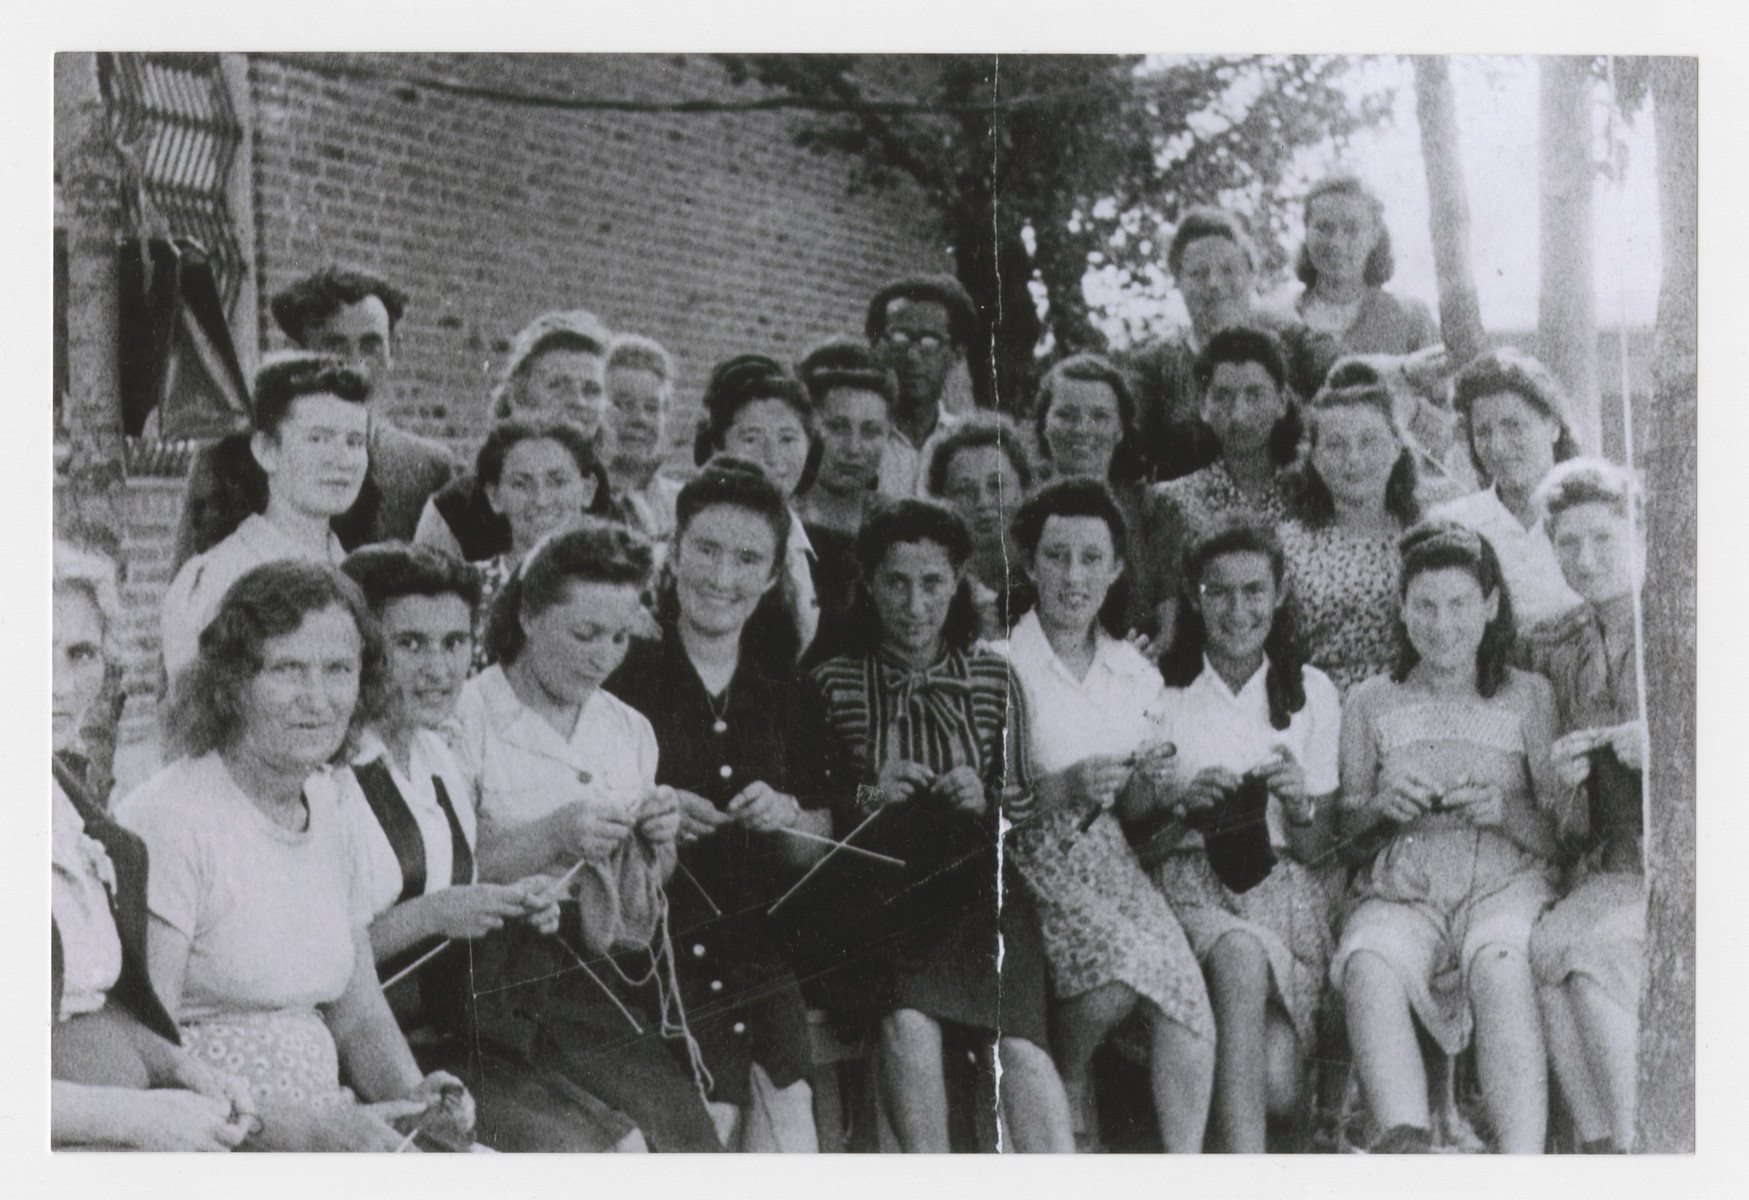 Group portrait of women in the knitting group in Heidenheim.  Among those pictured is Szaindl (Shirley) Goldfarb.